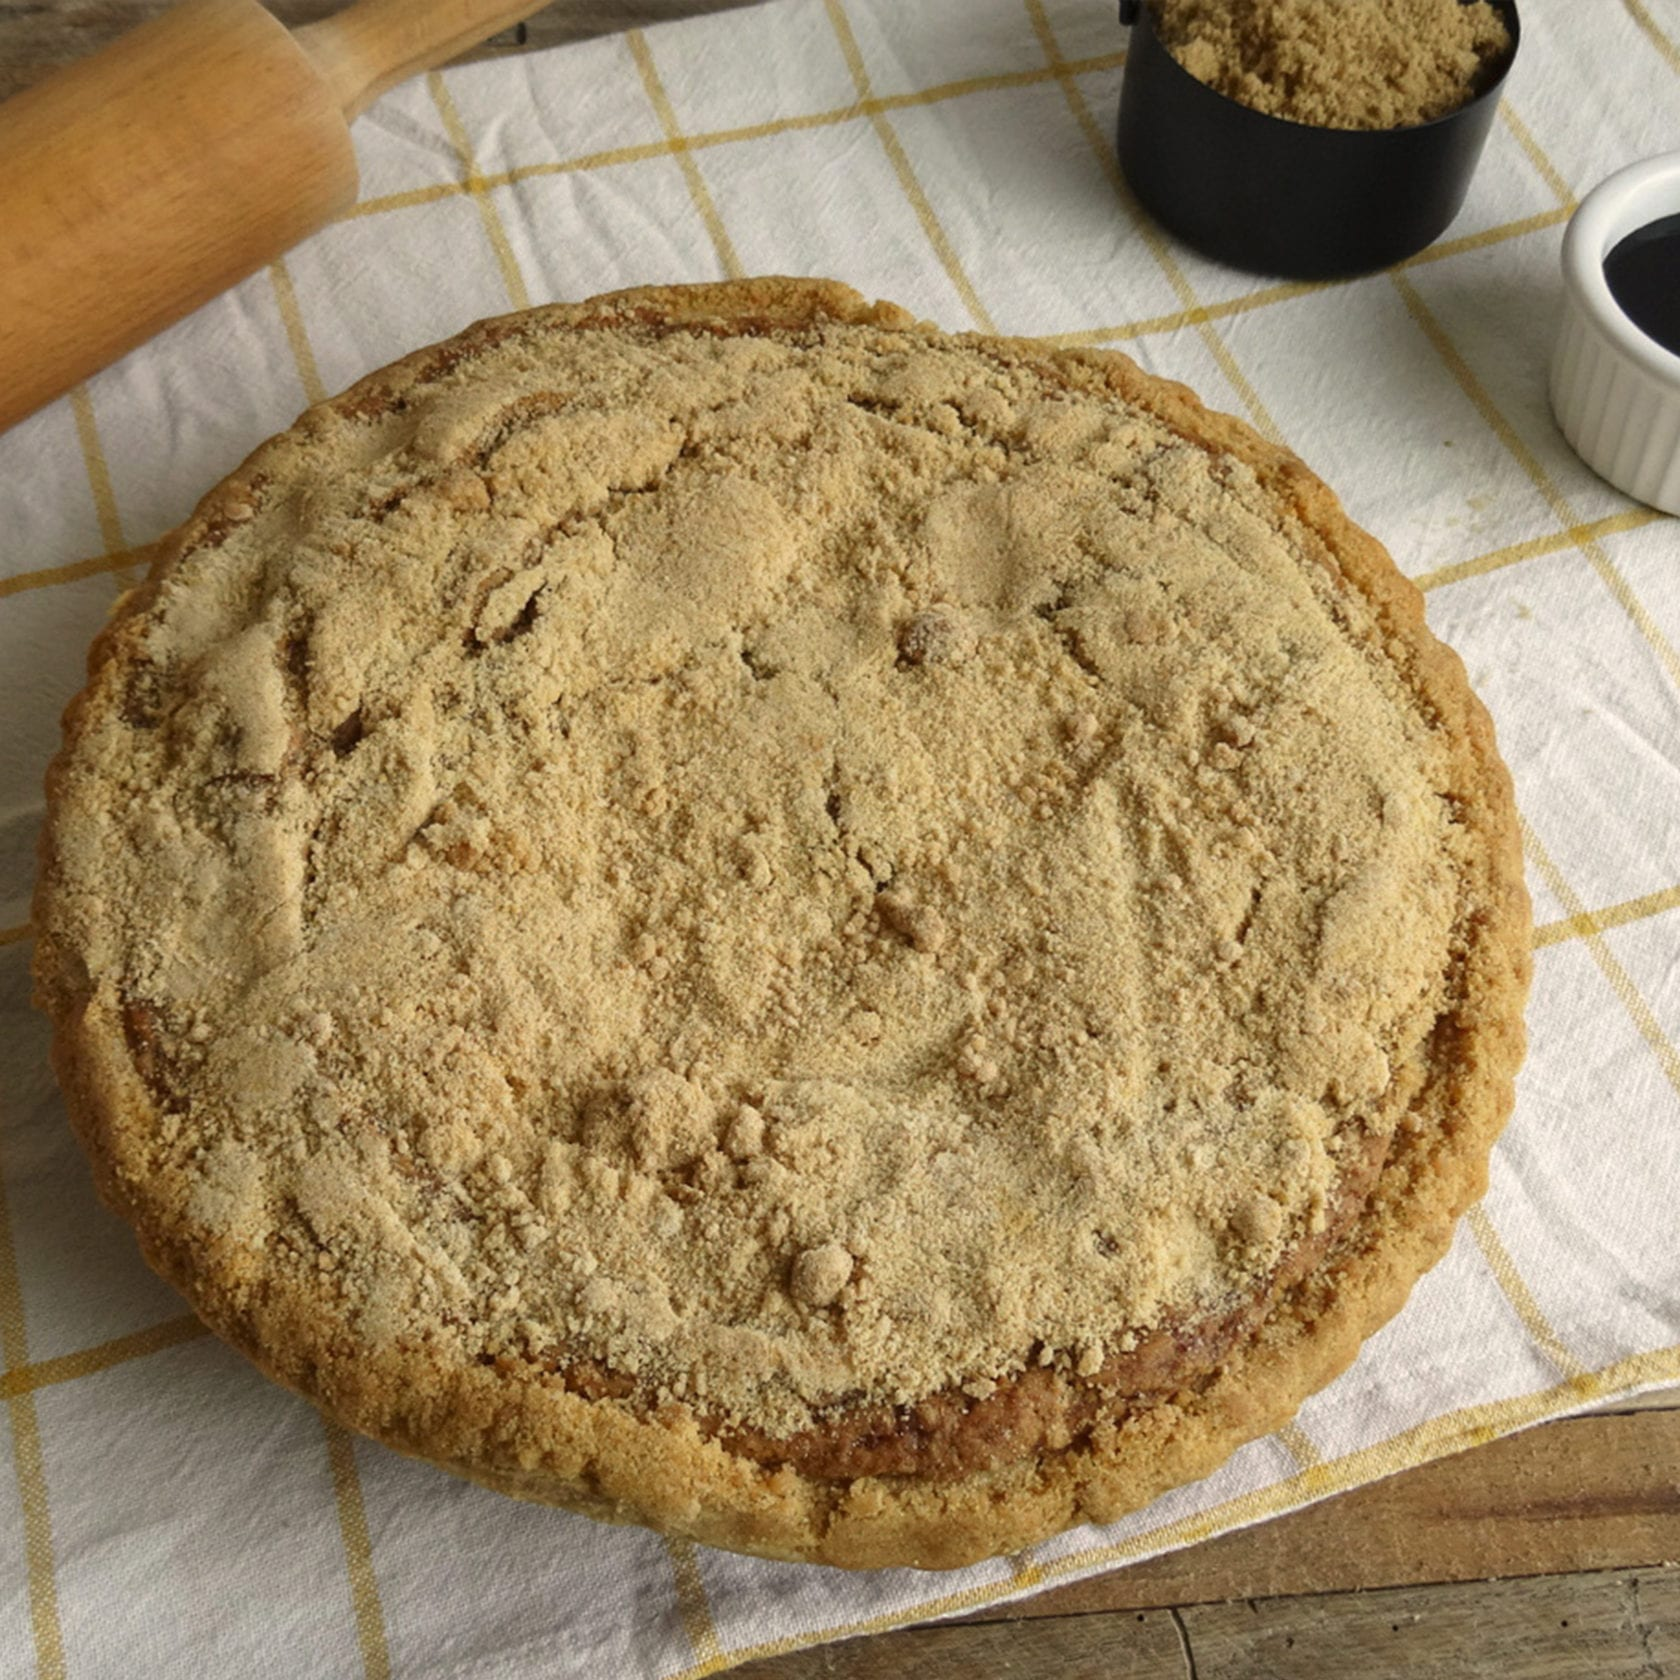 Whole shoofly pie from Bird-in-Hand Bakery & Cafe